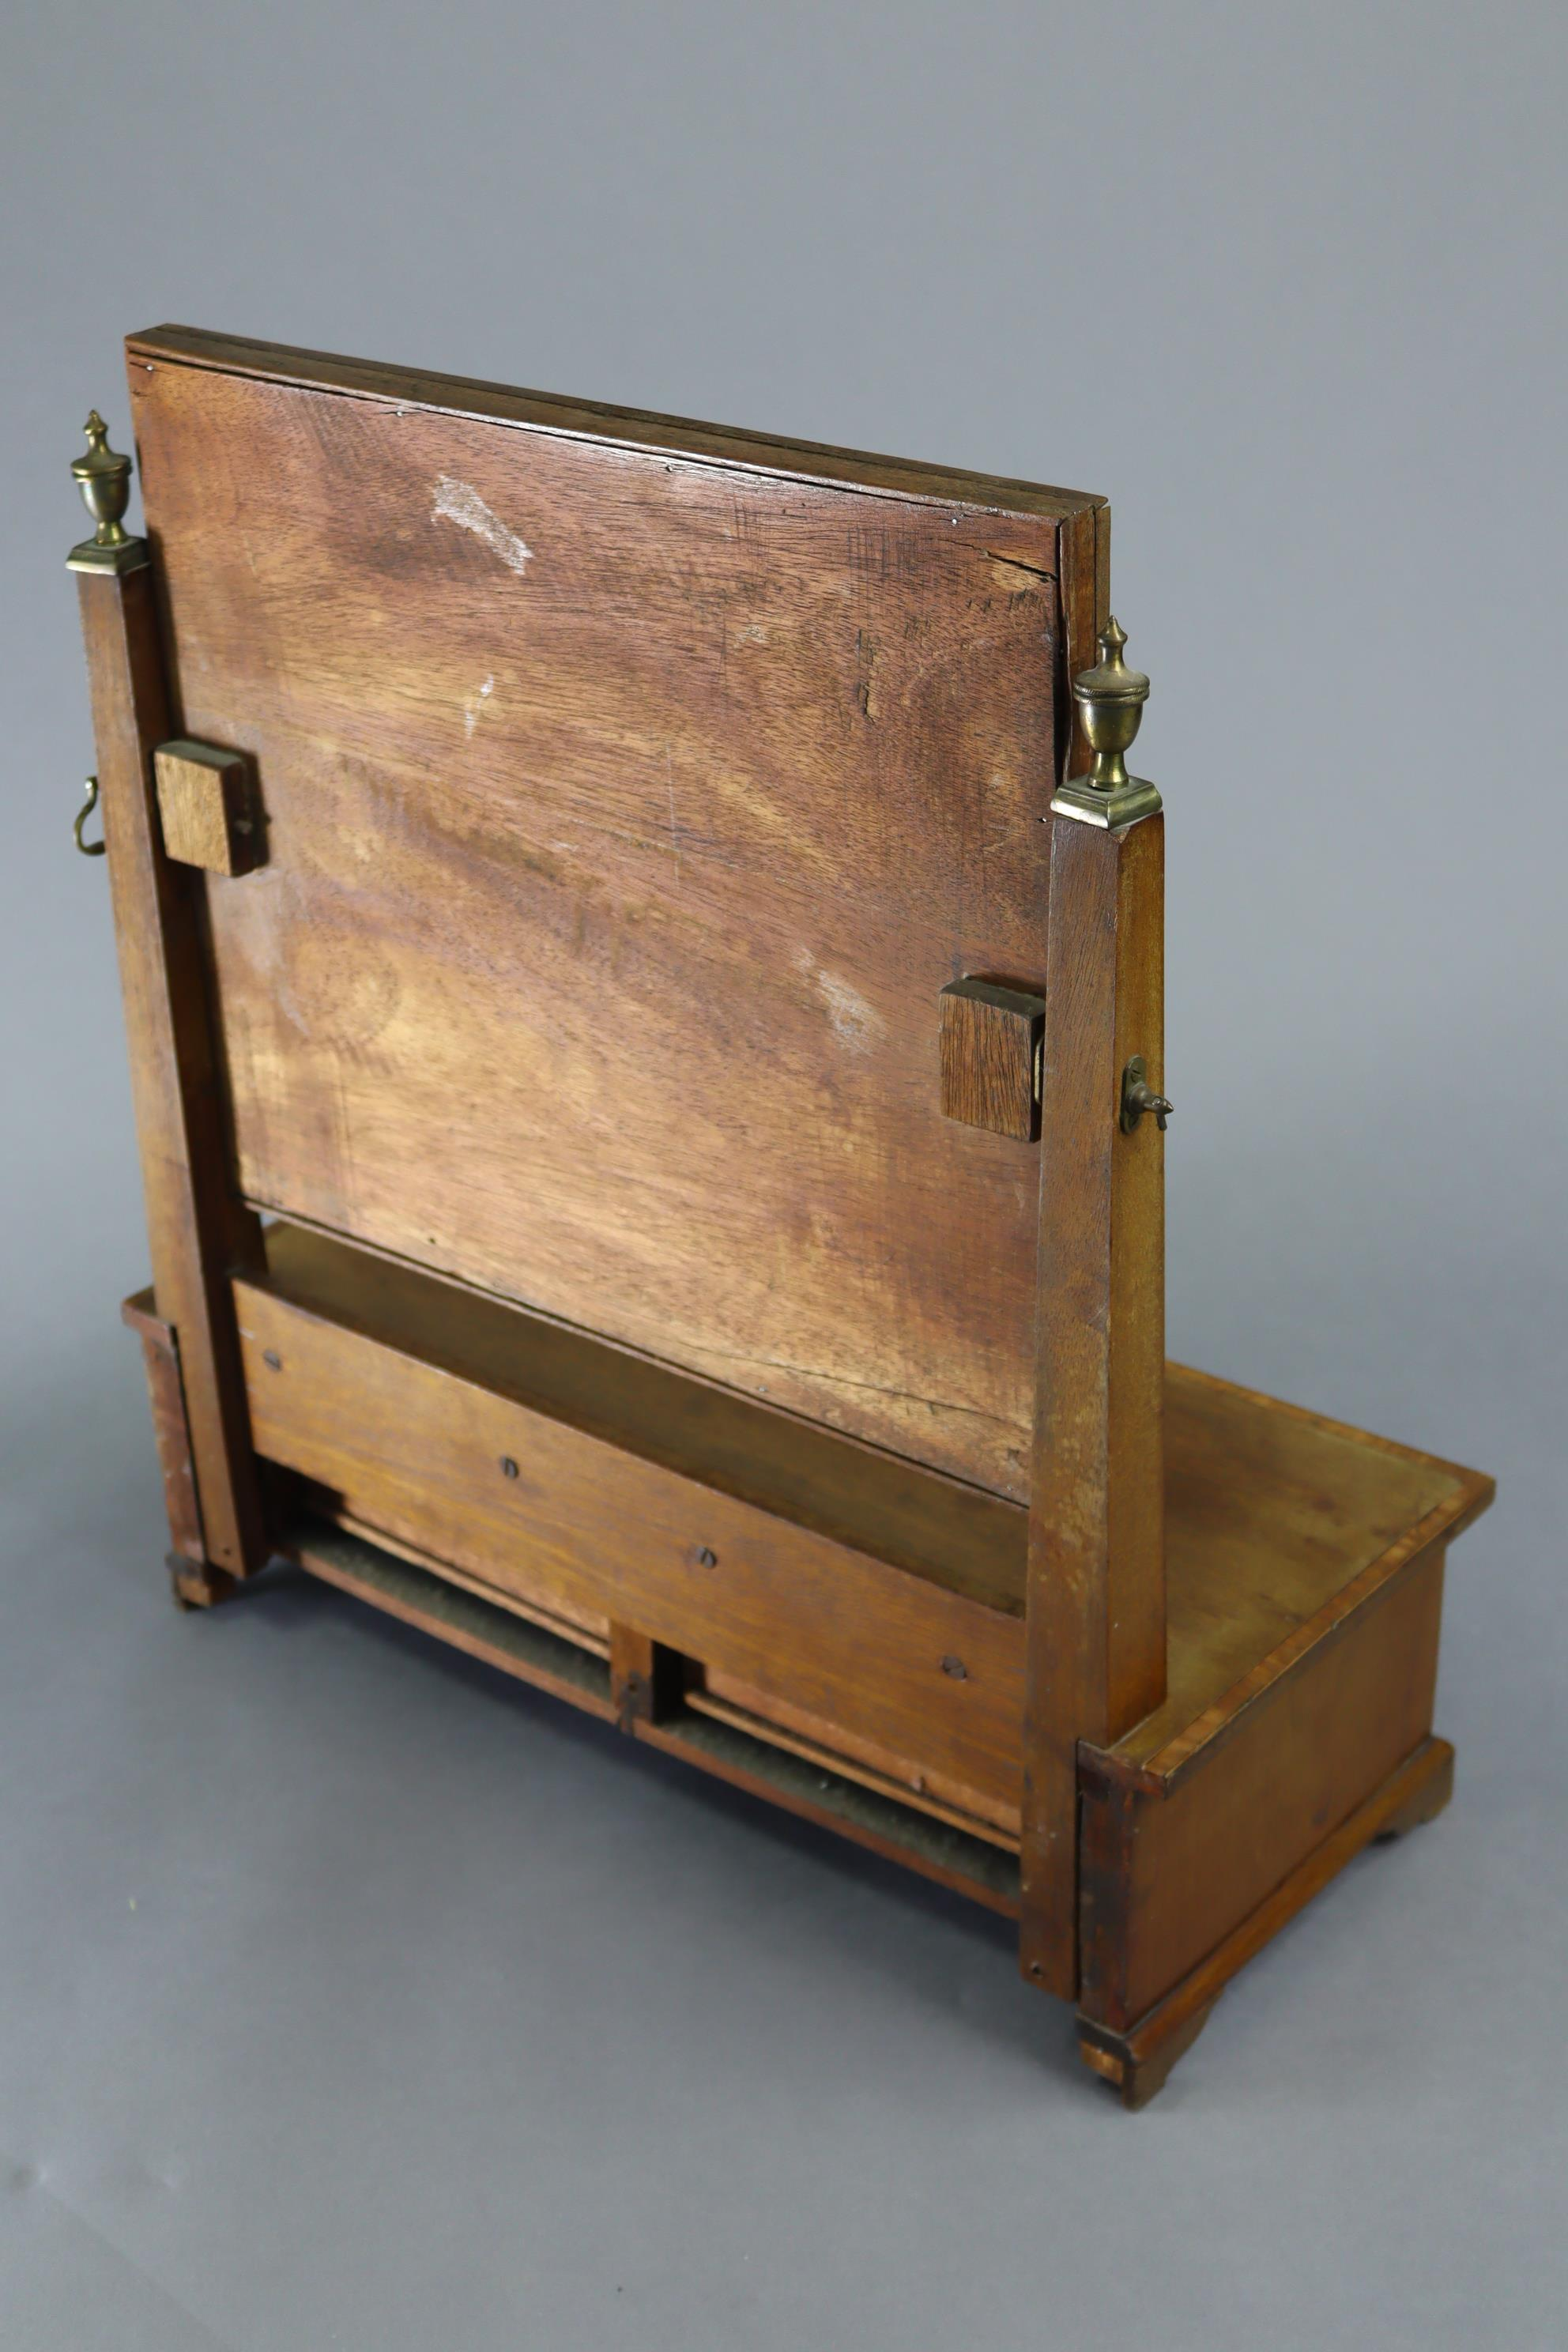 An Edwardian inlaid mahogany rectangular swing toilet glass, fitted two small drawers to the box - Image 5 of 5